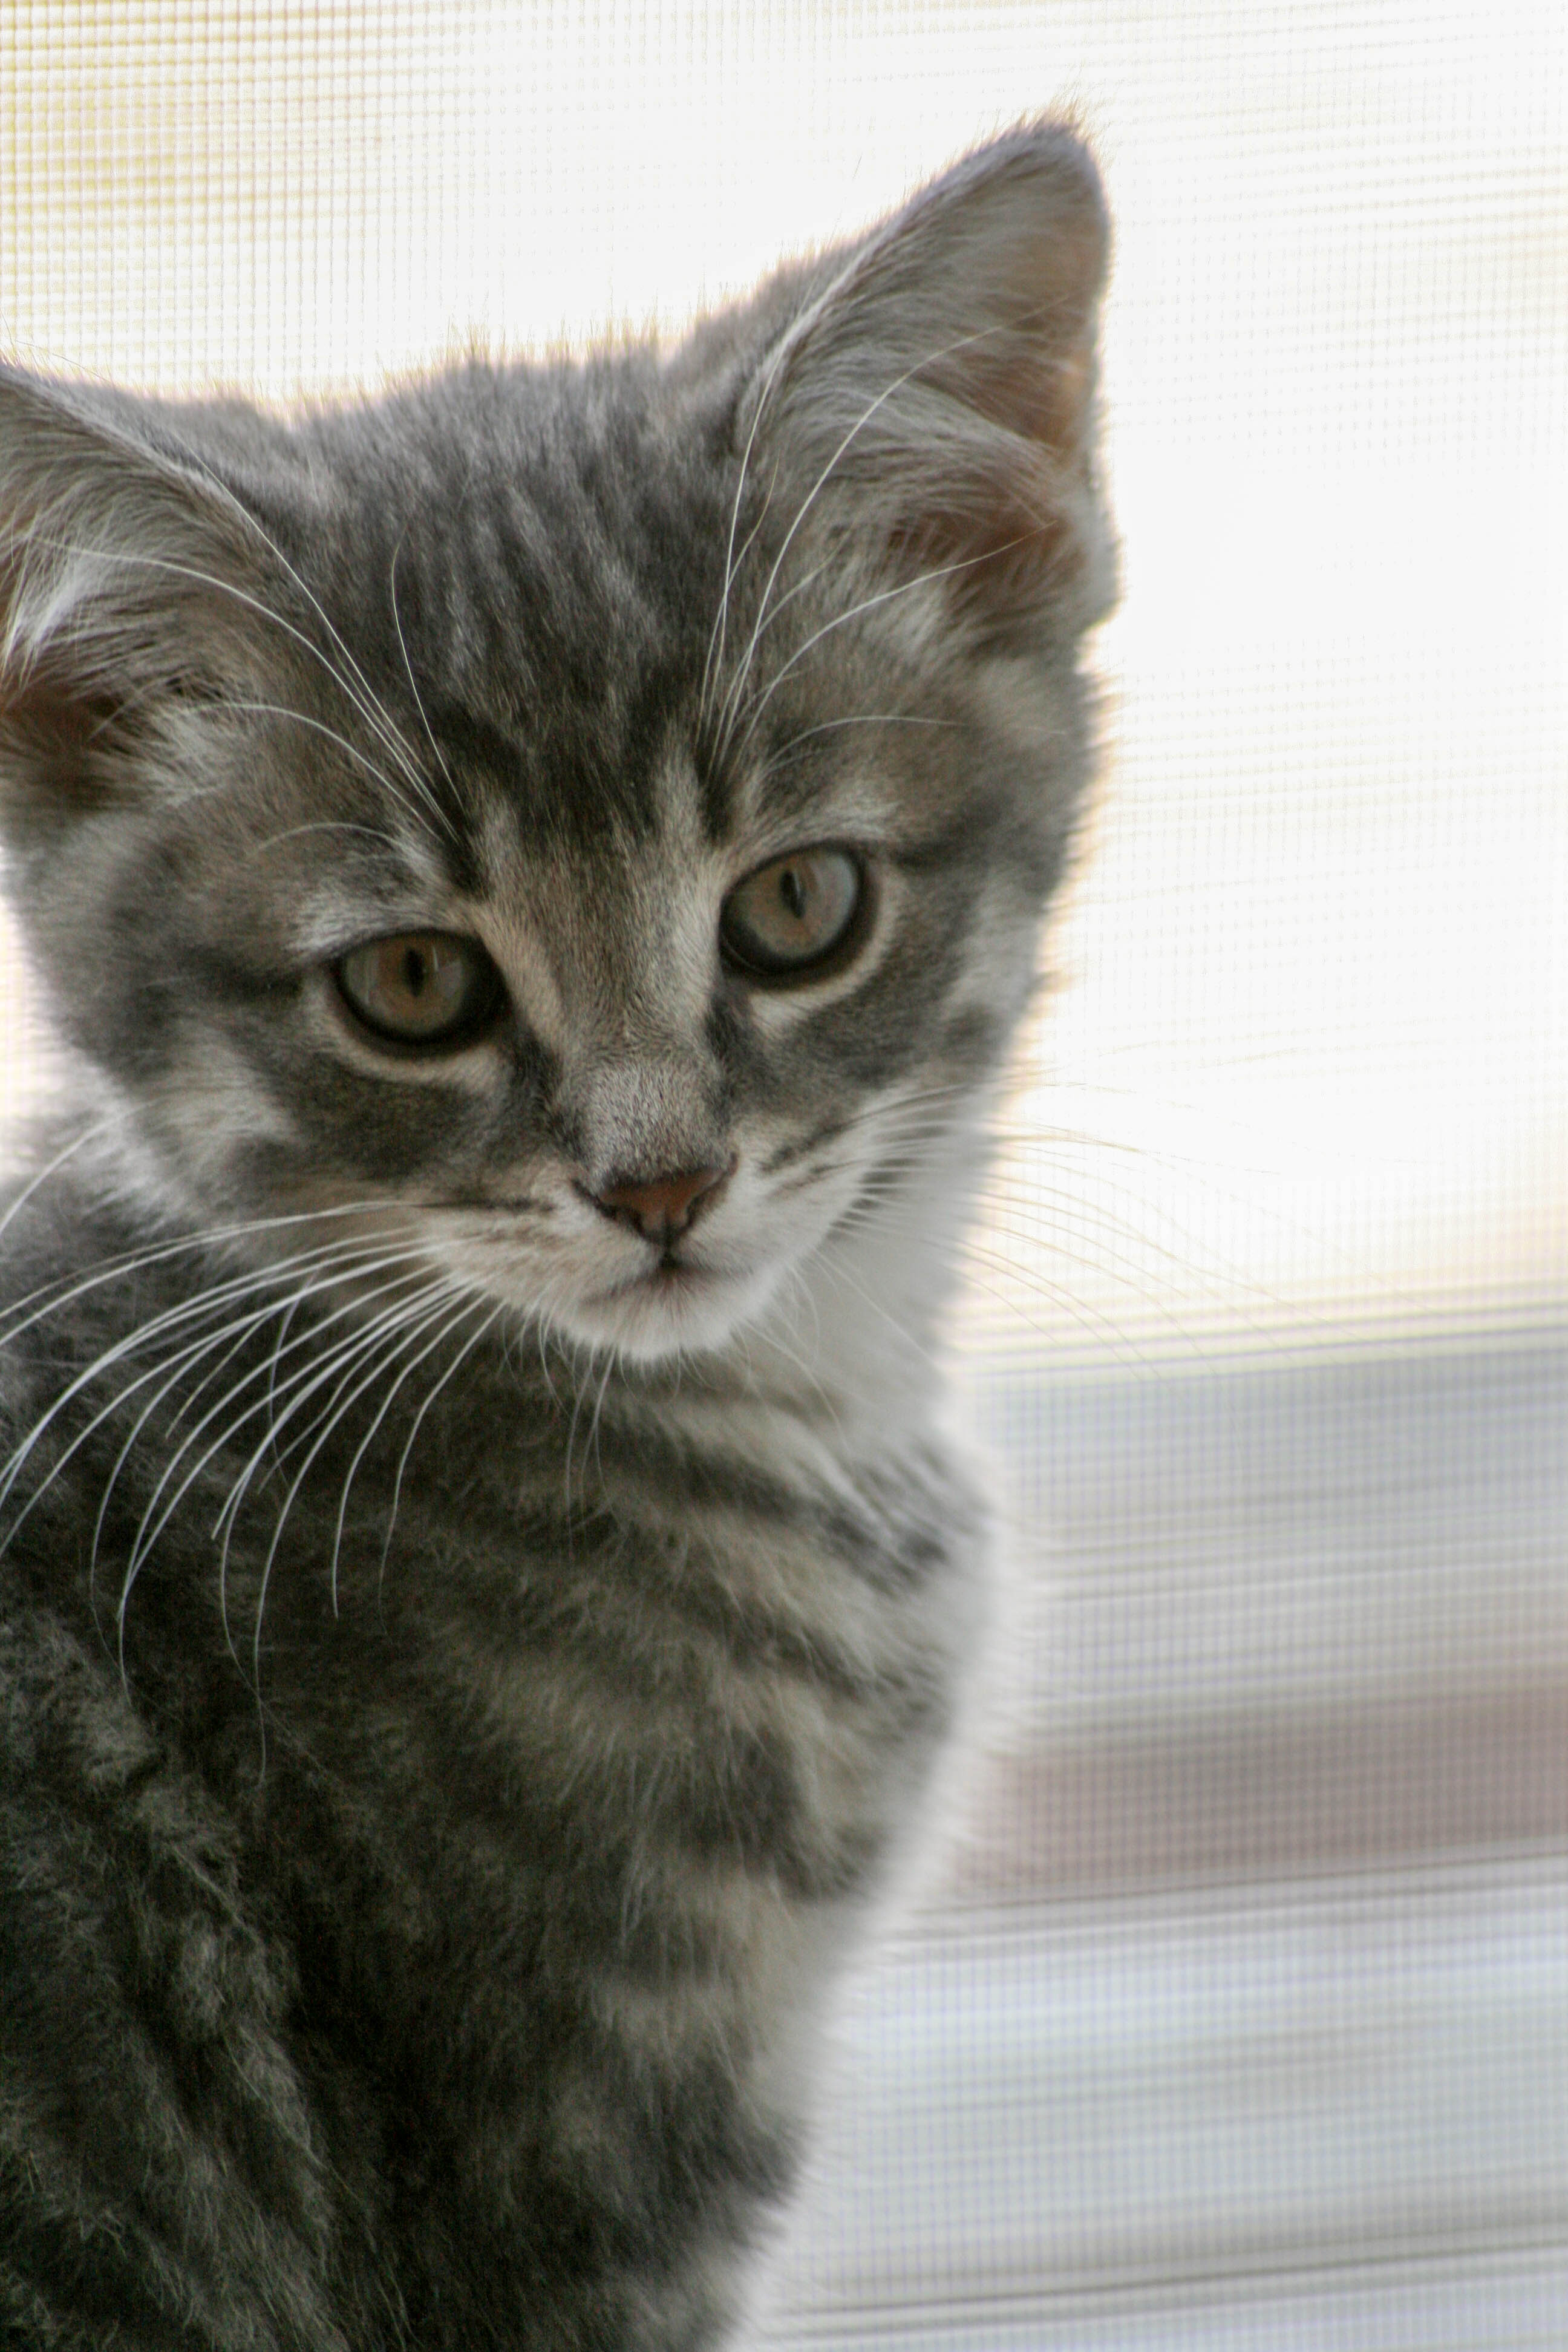 78506 download wallpaper Animals, Kitty, Kitten, Cat, Grey, Nice, Sweetheart, Pet screensavers and pictures for free